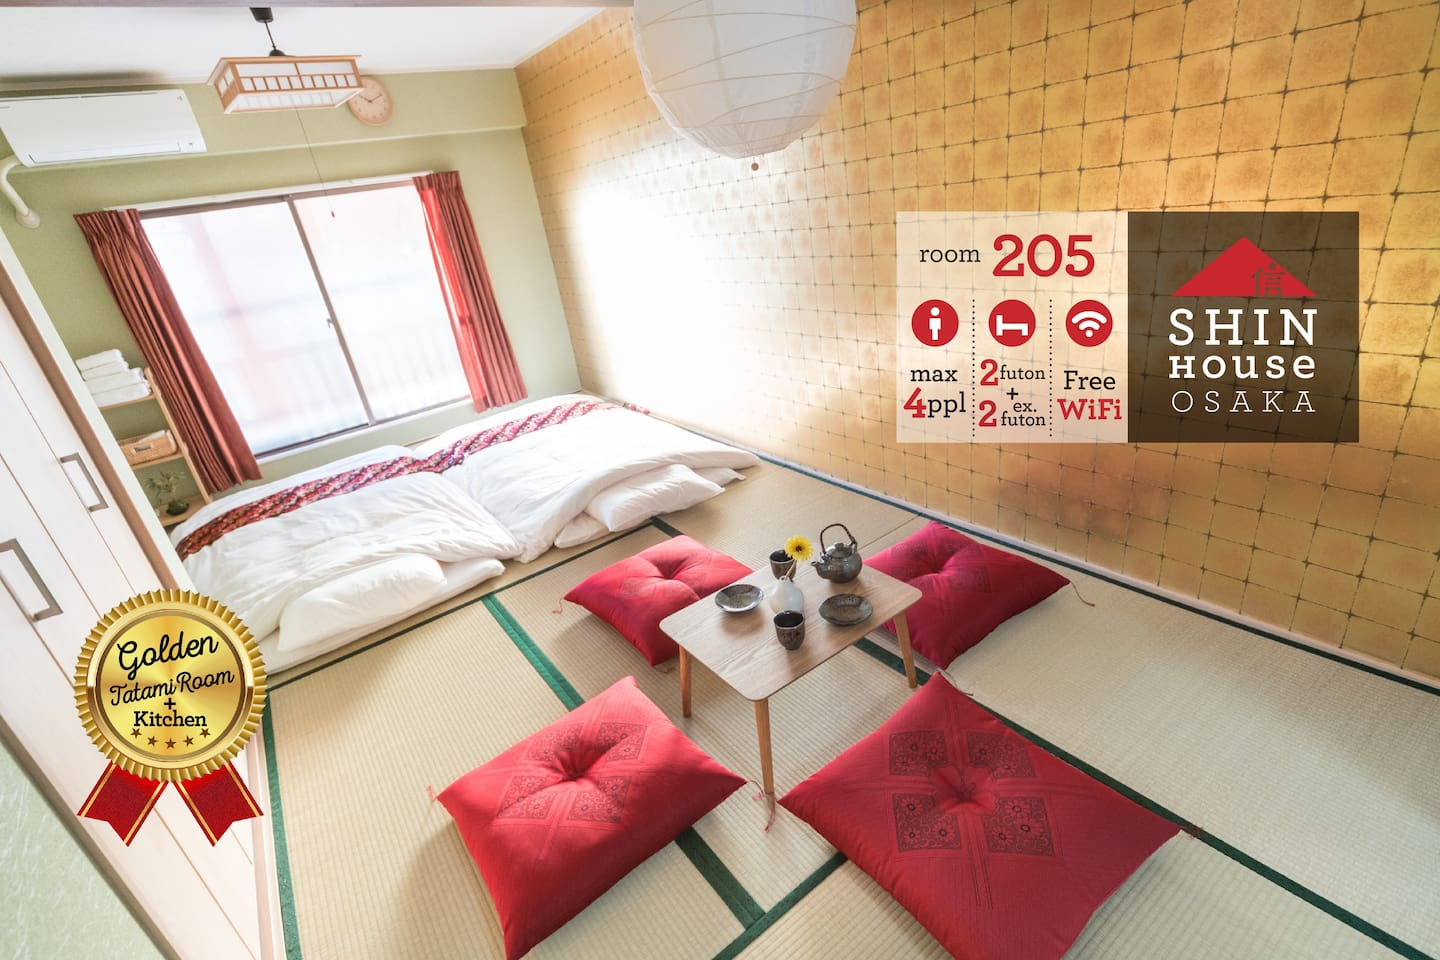 Authentic Japanese Room Coordinated with Golden wall for 1-4 People, Just Renovated in Apr 2017